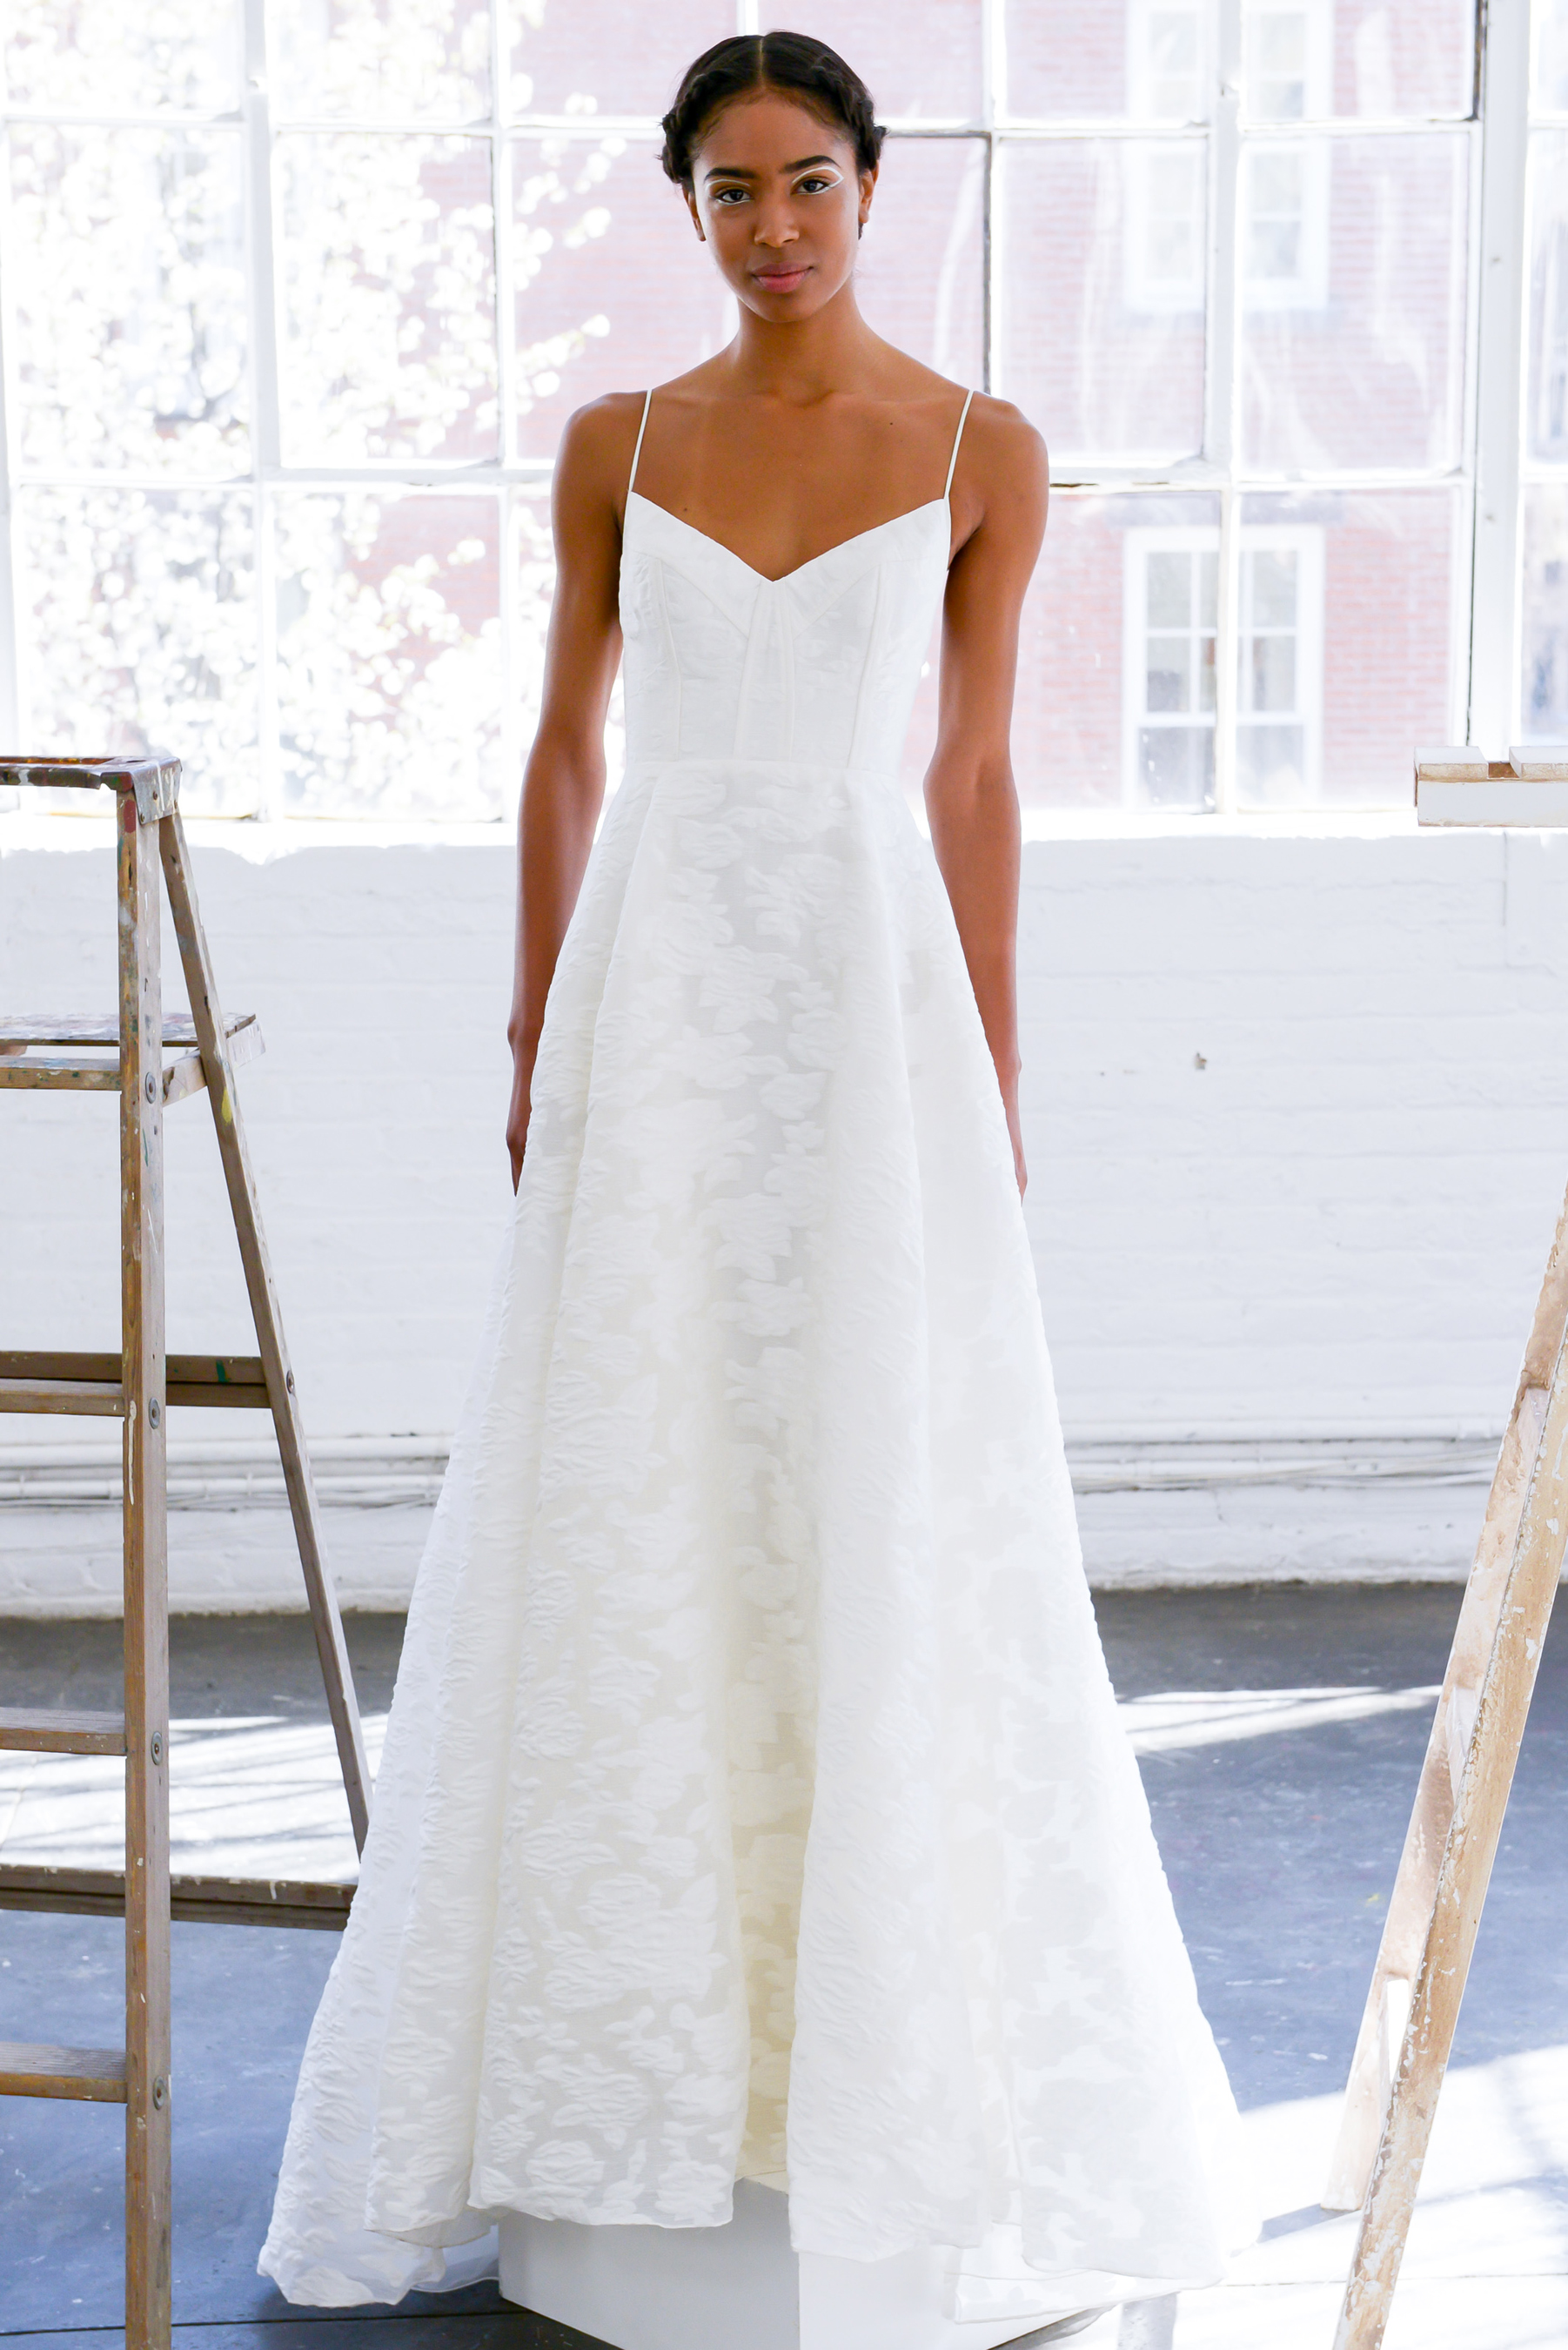 Simple Yet Stunning Wedding Dresses : Simple yet stunning dresses from spring bridal week